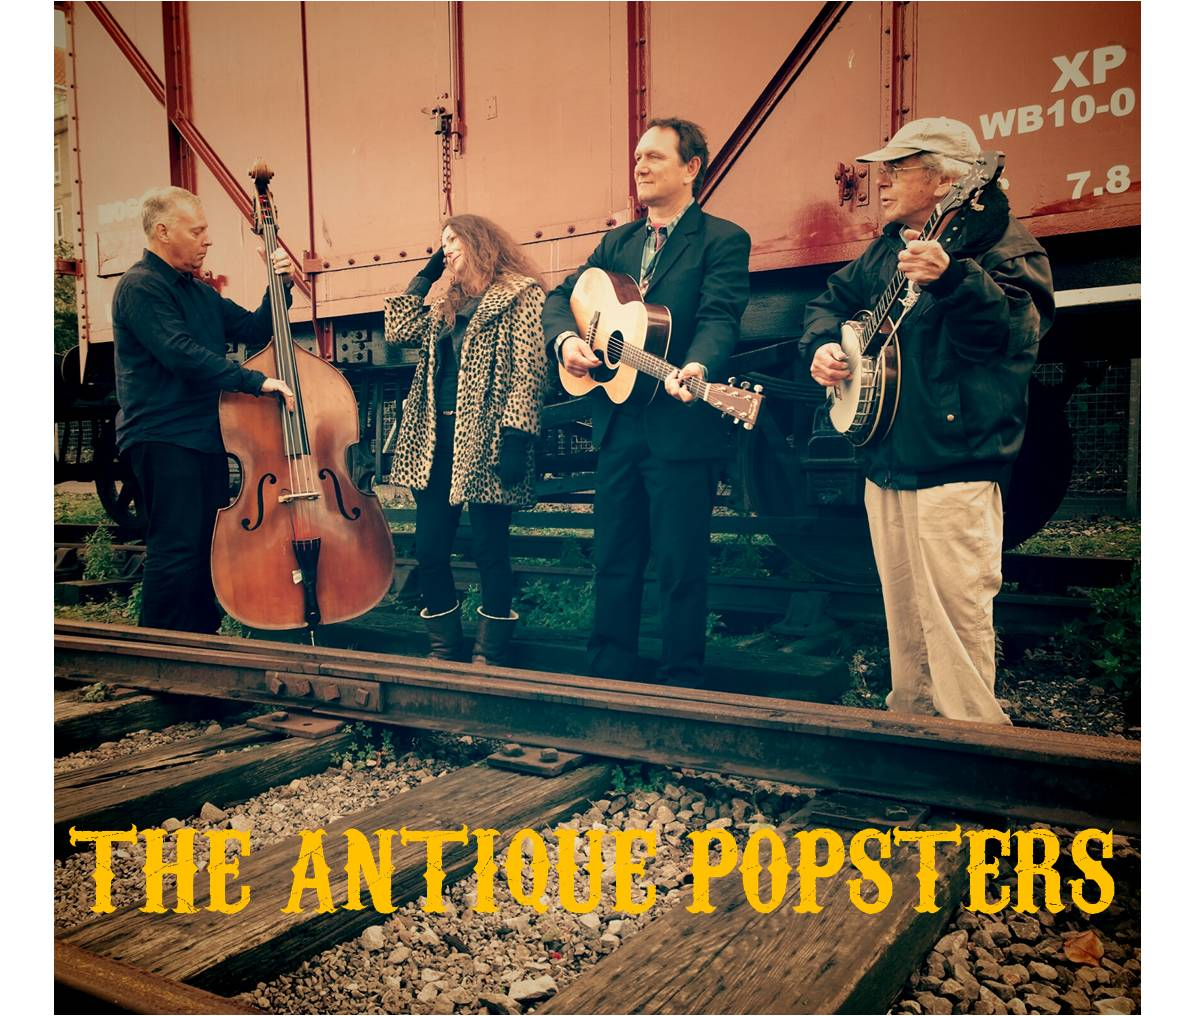 Fine acoustic band for weddings, private parties, functions barn dances, celiidhs